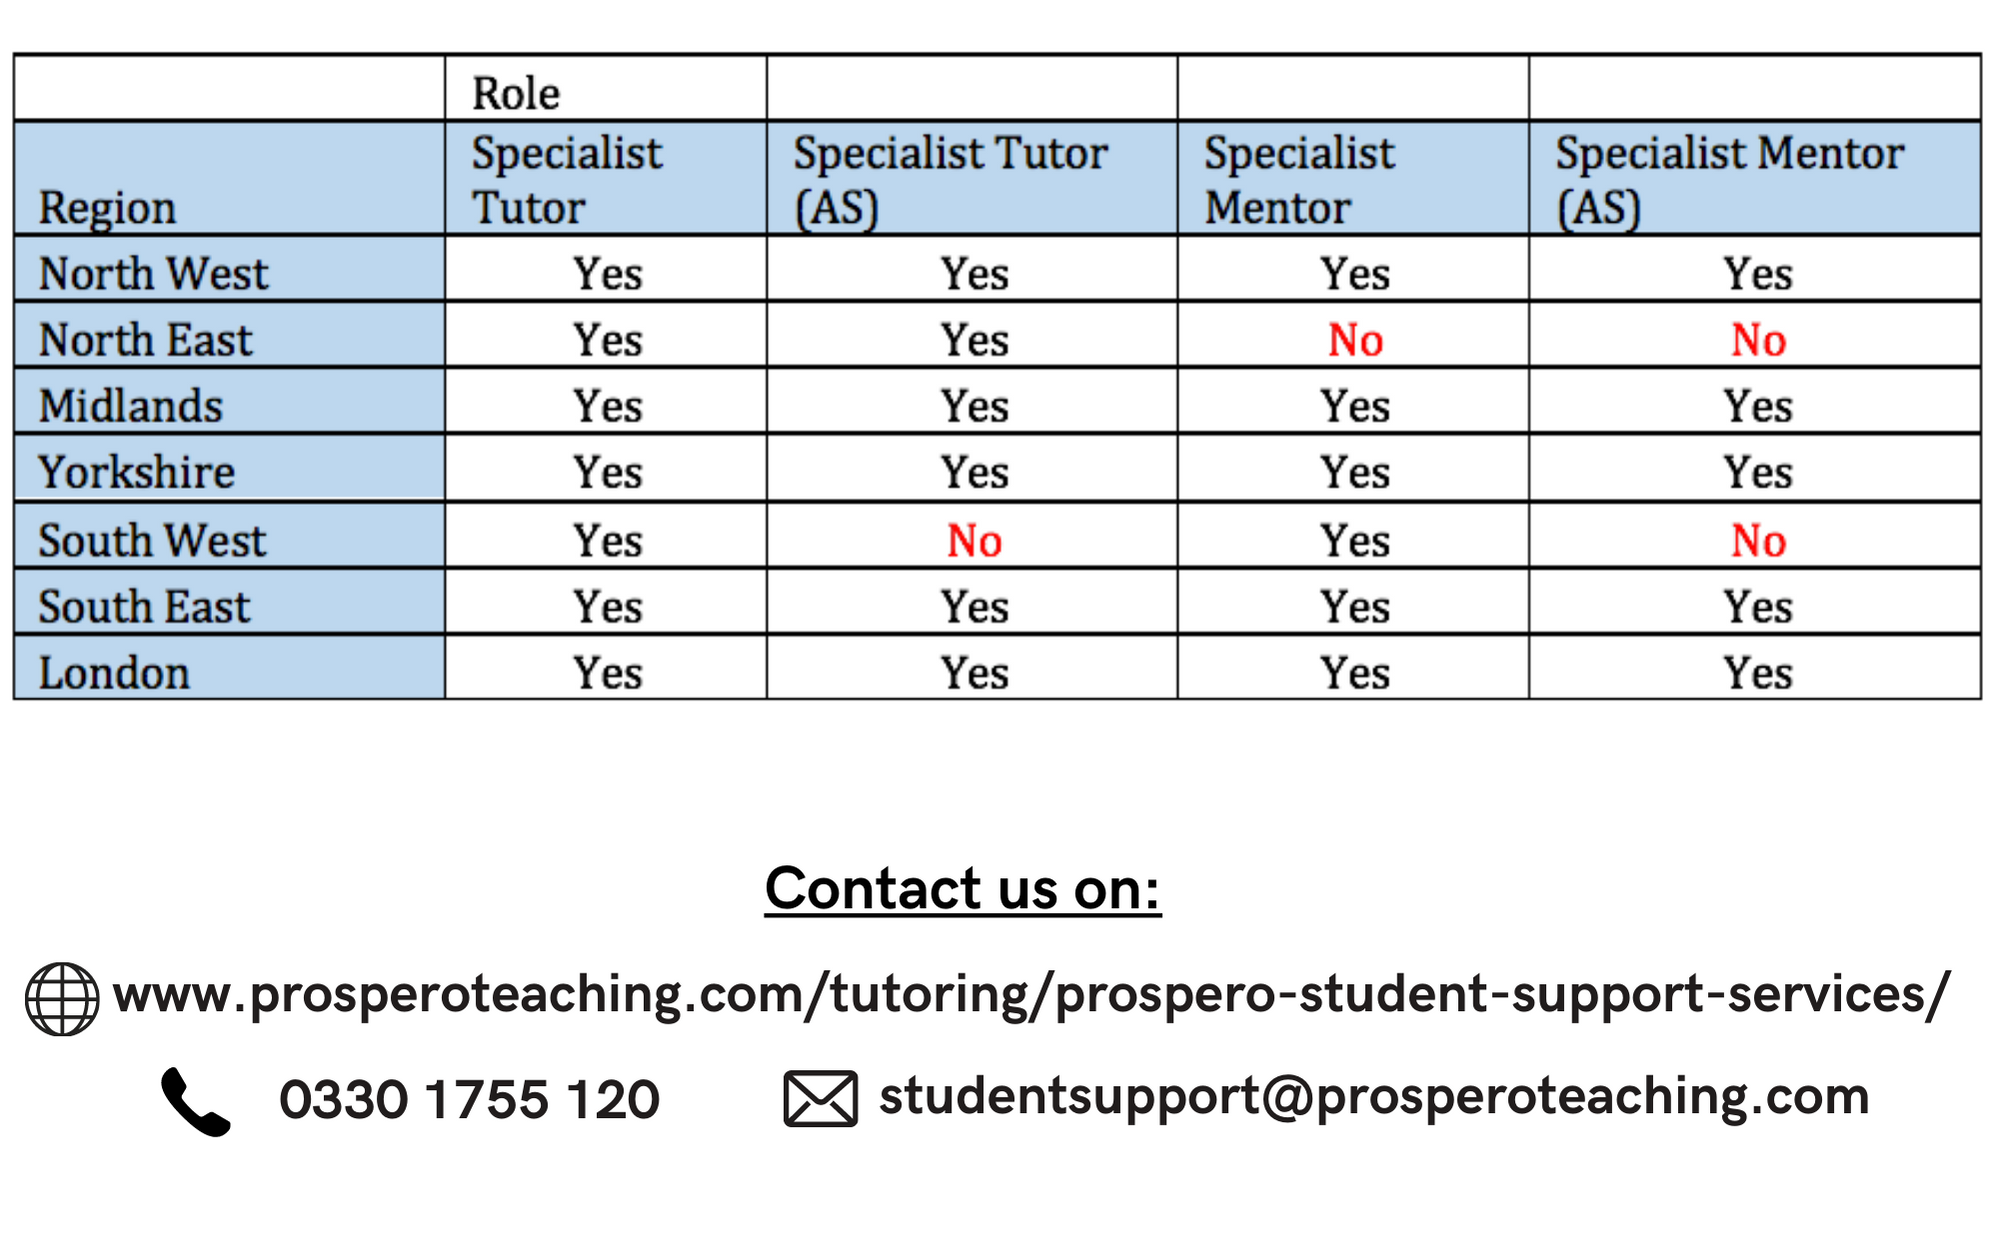 Student Support Services Tutor & Mentor Availability across the UK: